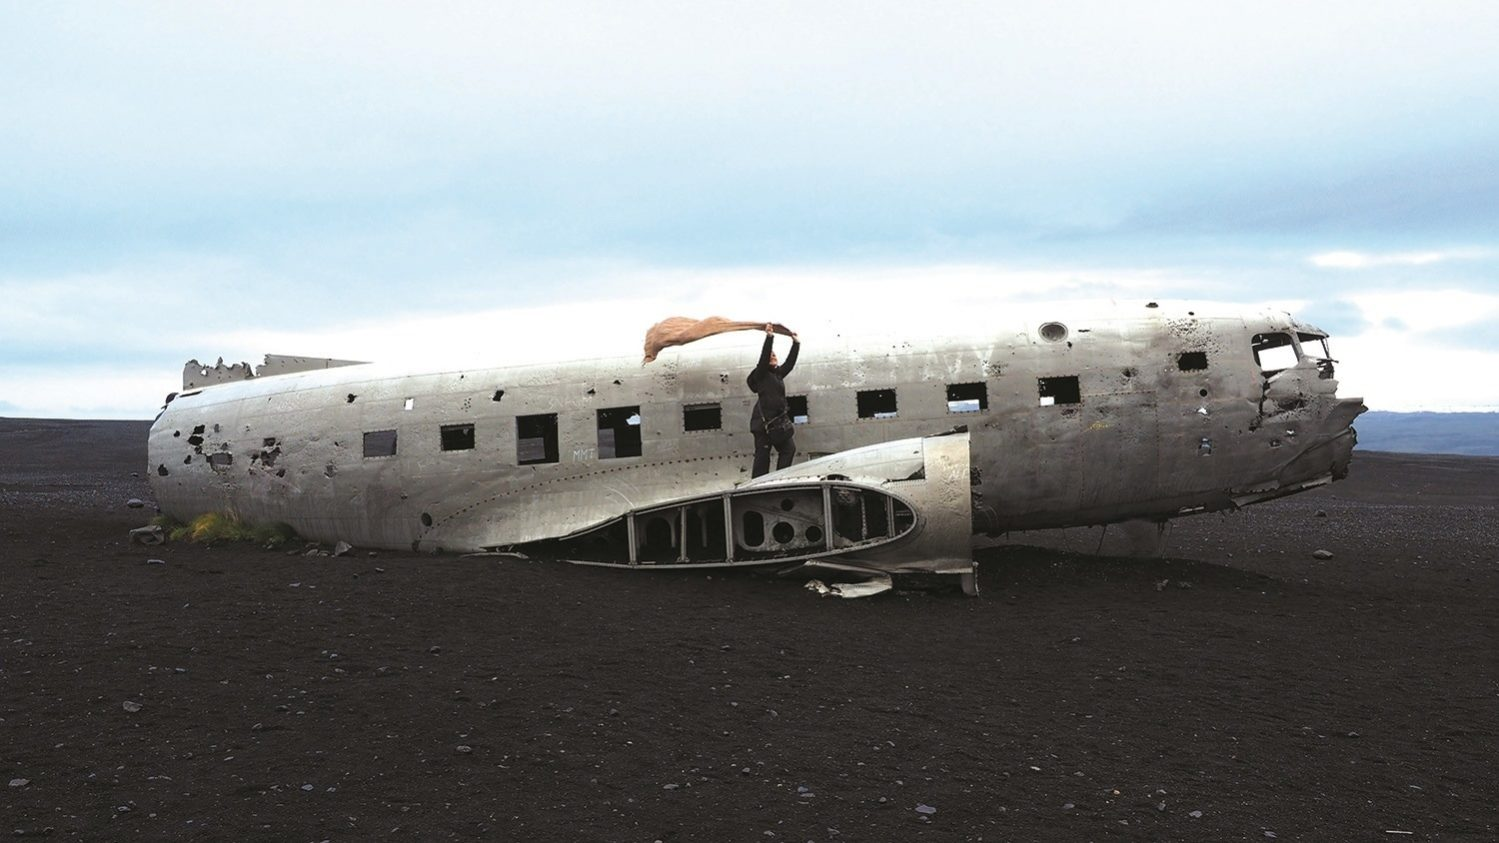 On November 24, 1973 a United States Navy plane crashed onto the beach in South Iceland, and thankfully there were no casualty. The Solheimasandur Plane Wreck is one of the most visited attractions in South Iceland - be prepared to walk 4 kilometres to reach here!